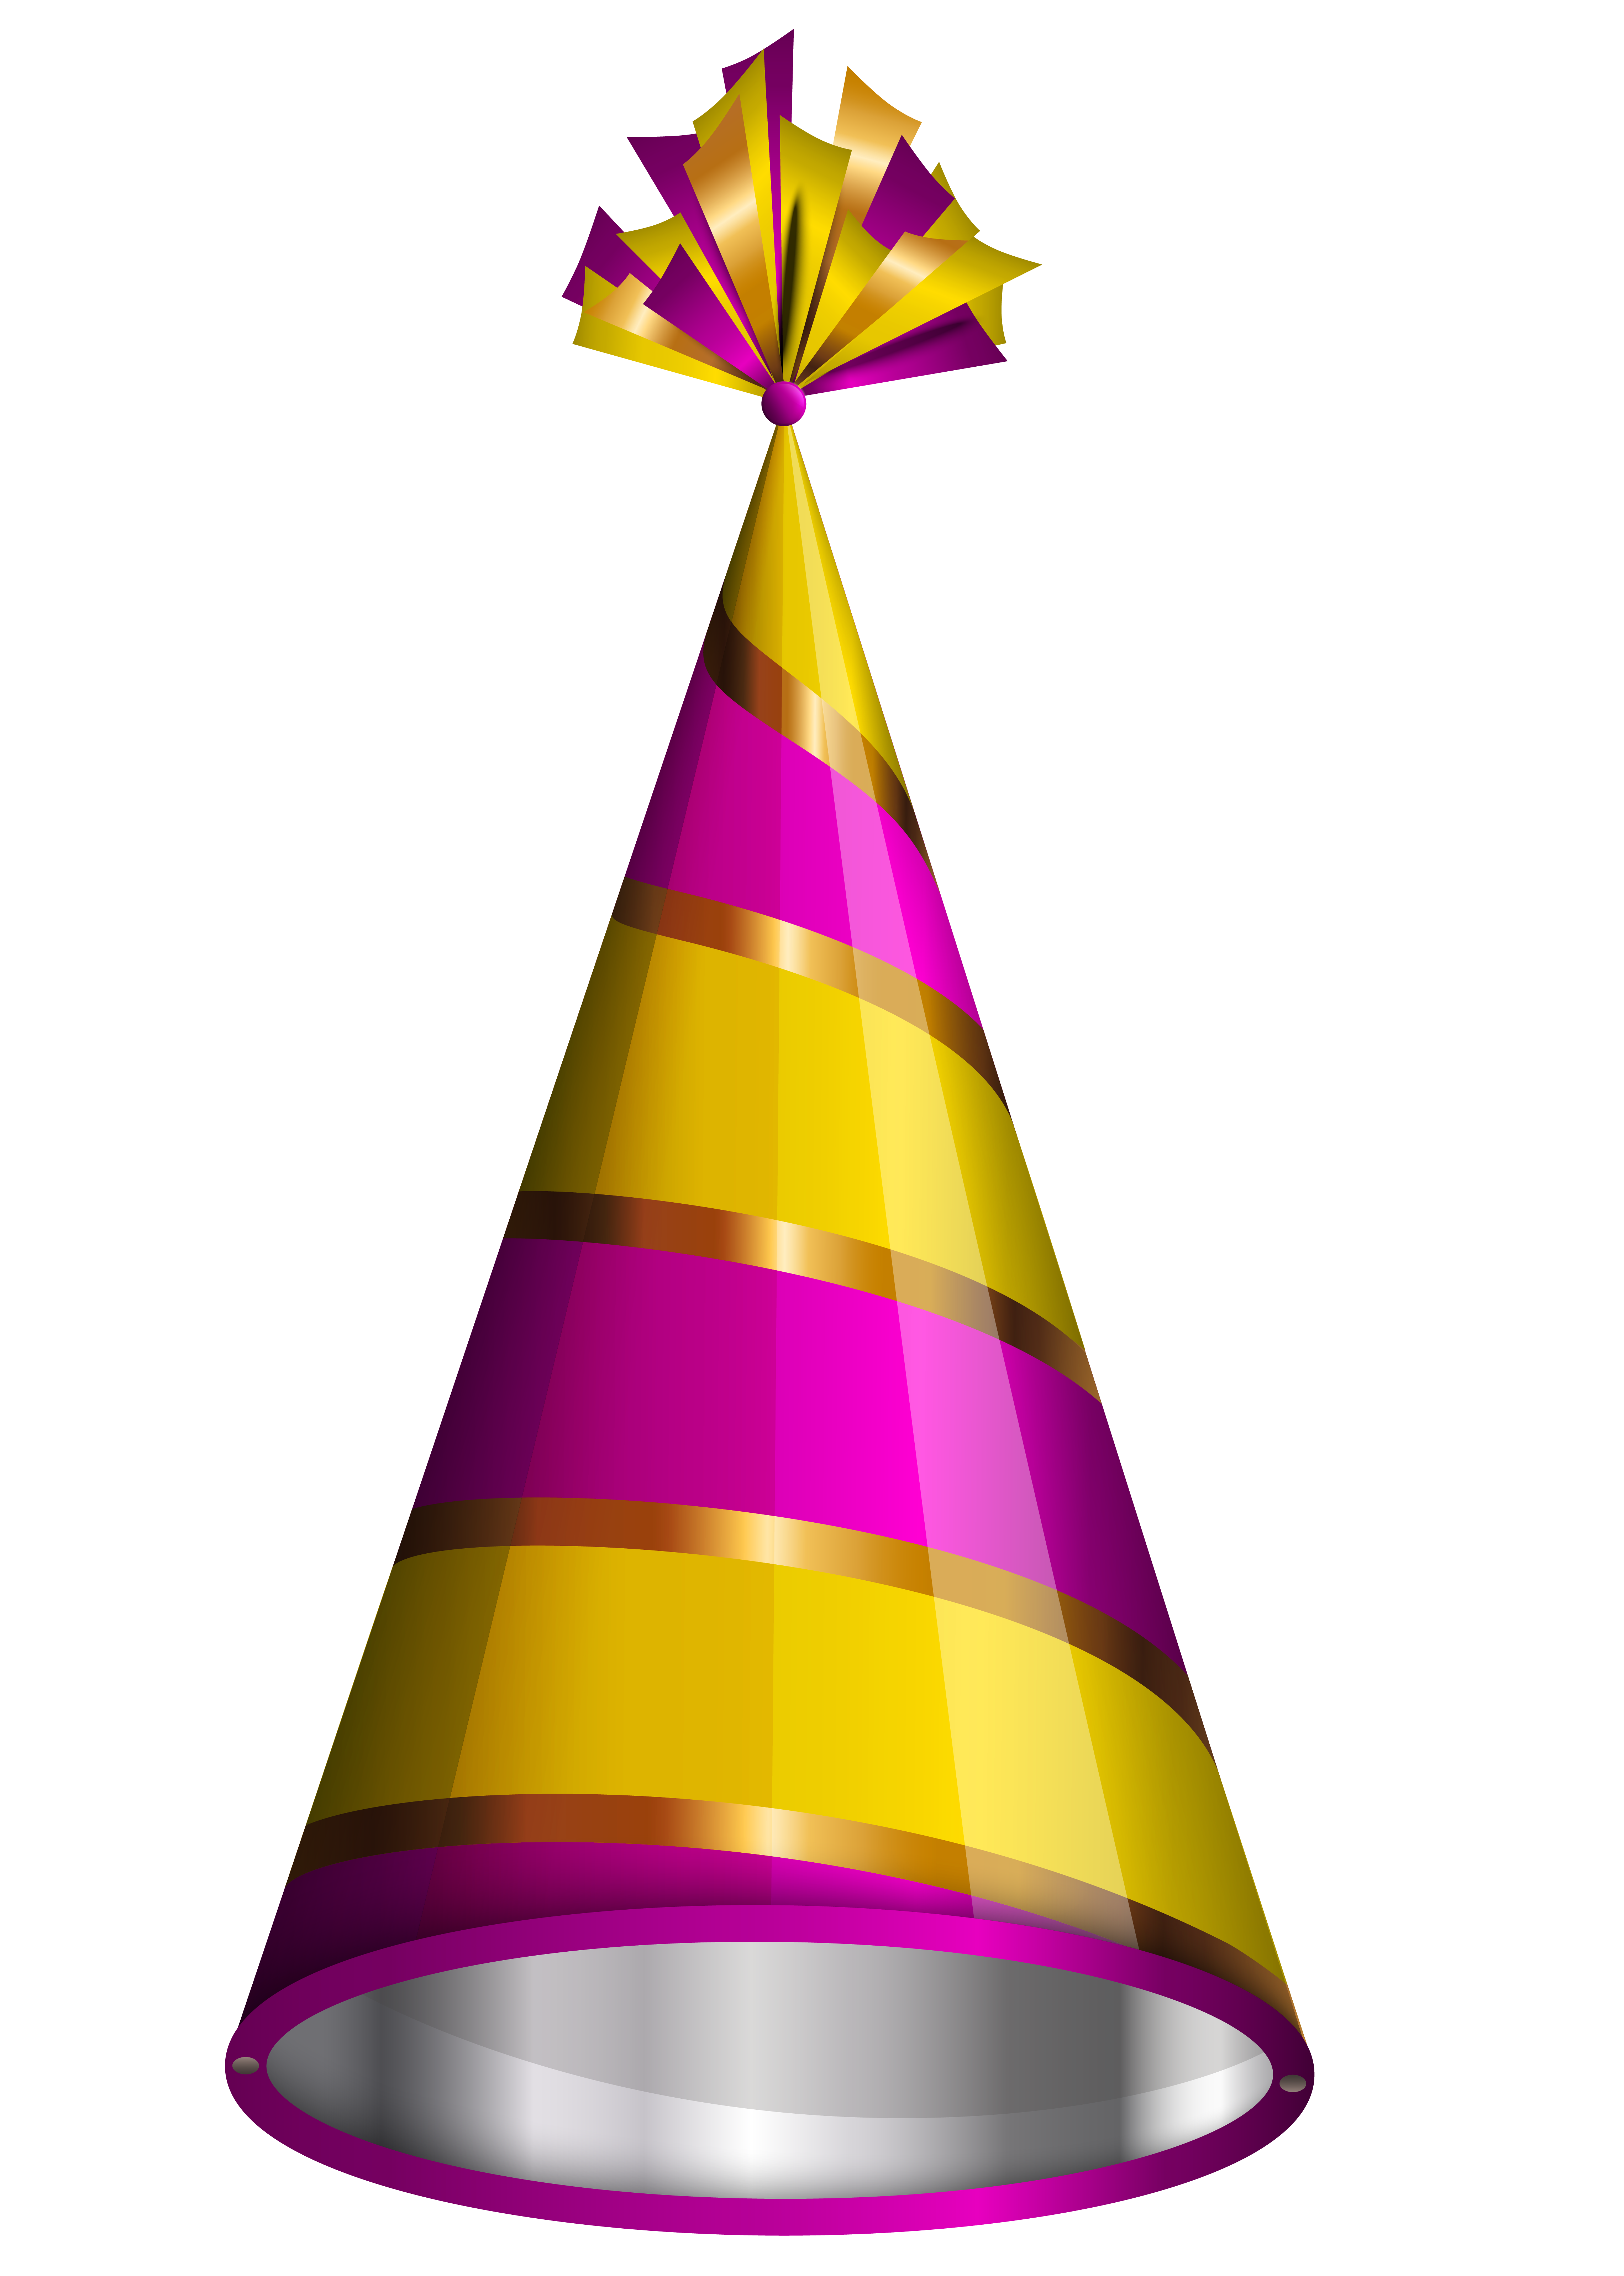 Birthday Hat Happy Party Hats Transparent Clipart 2 Right Click On This And Save In Your Local Drive